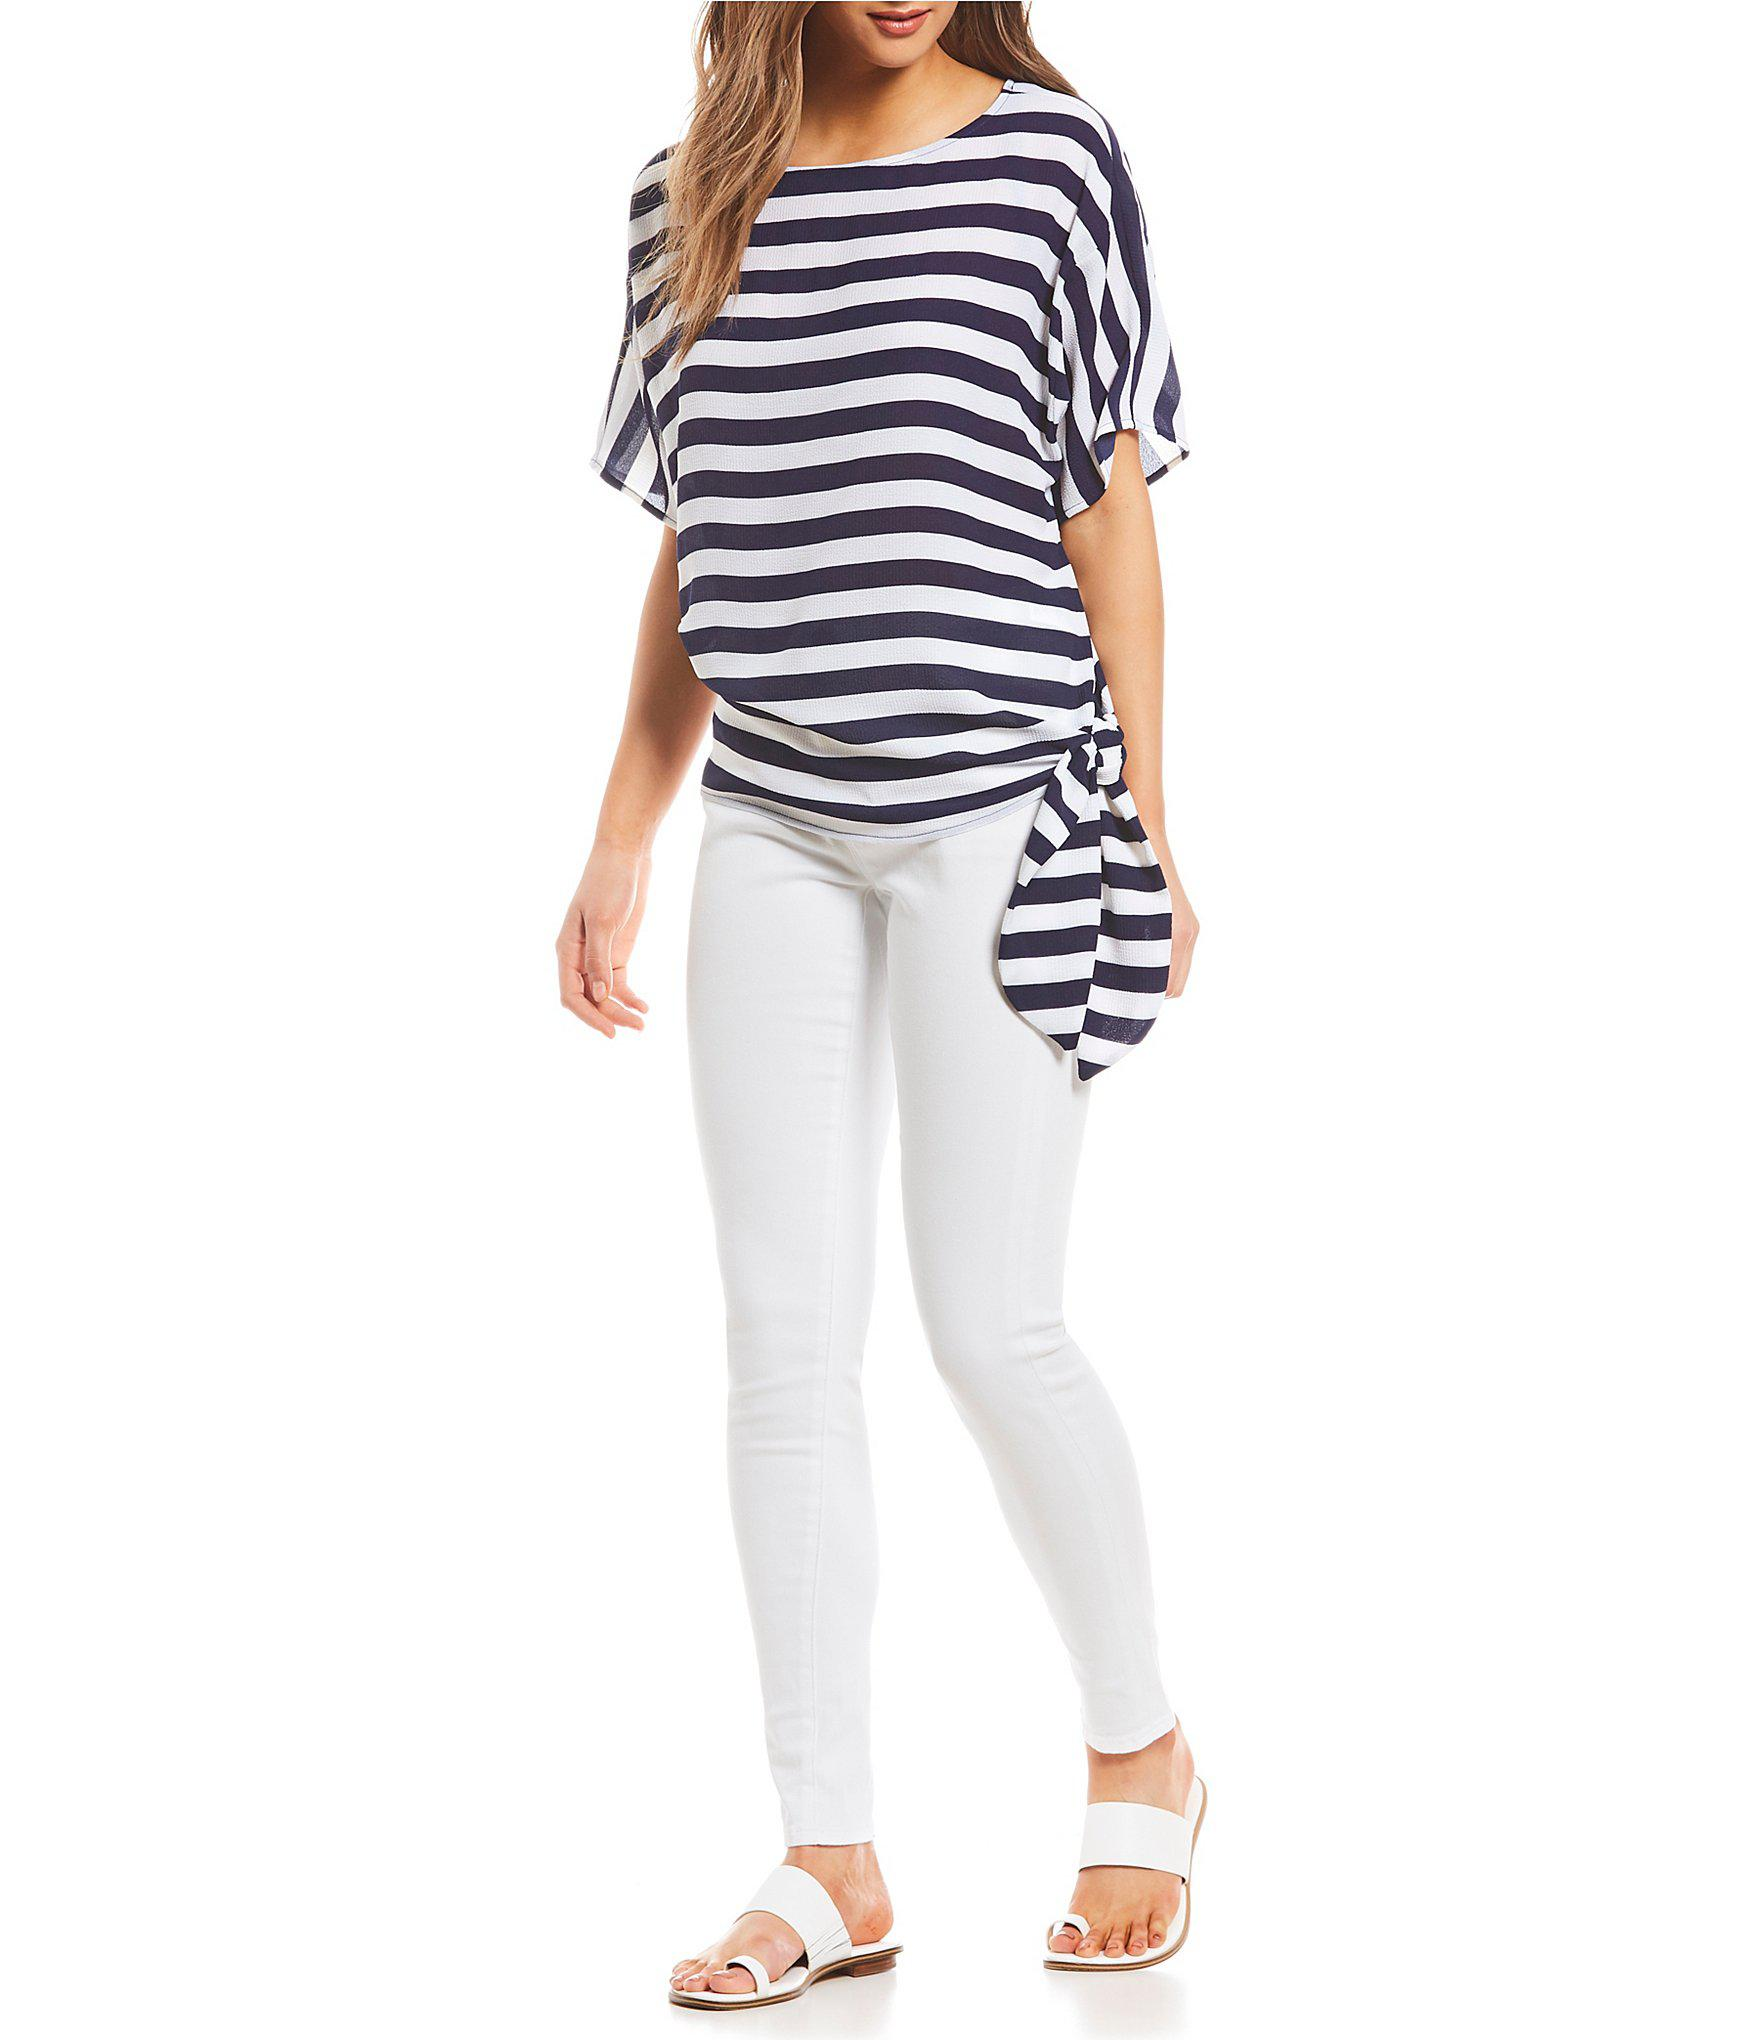 80fa6fabe0d Lyst - Michael Michael Kors Graphic Stripe Print Side-tie Top in Blue